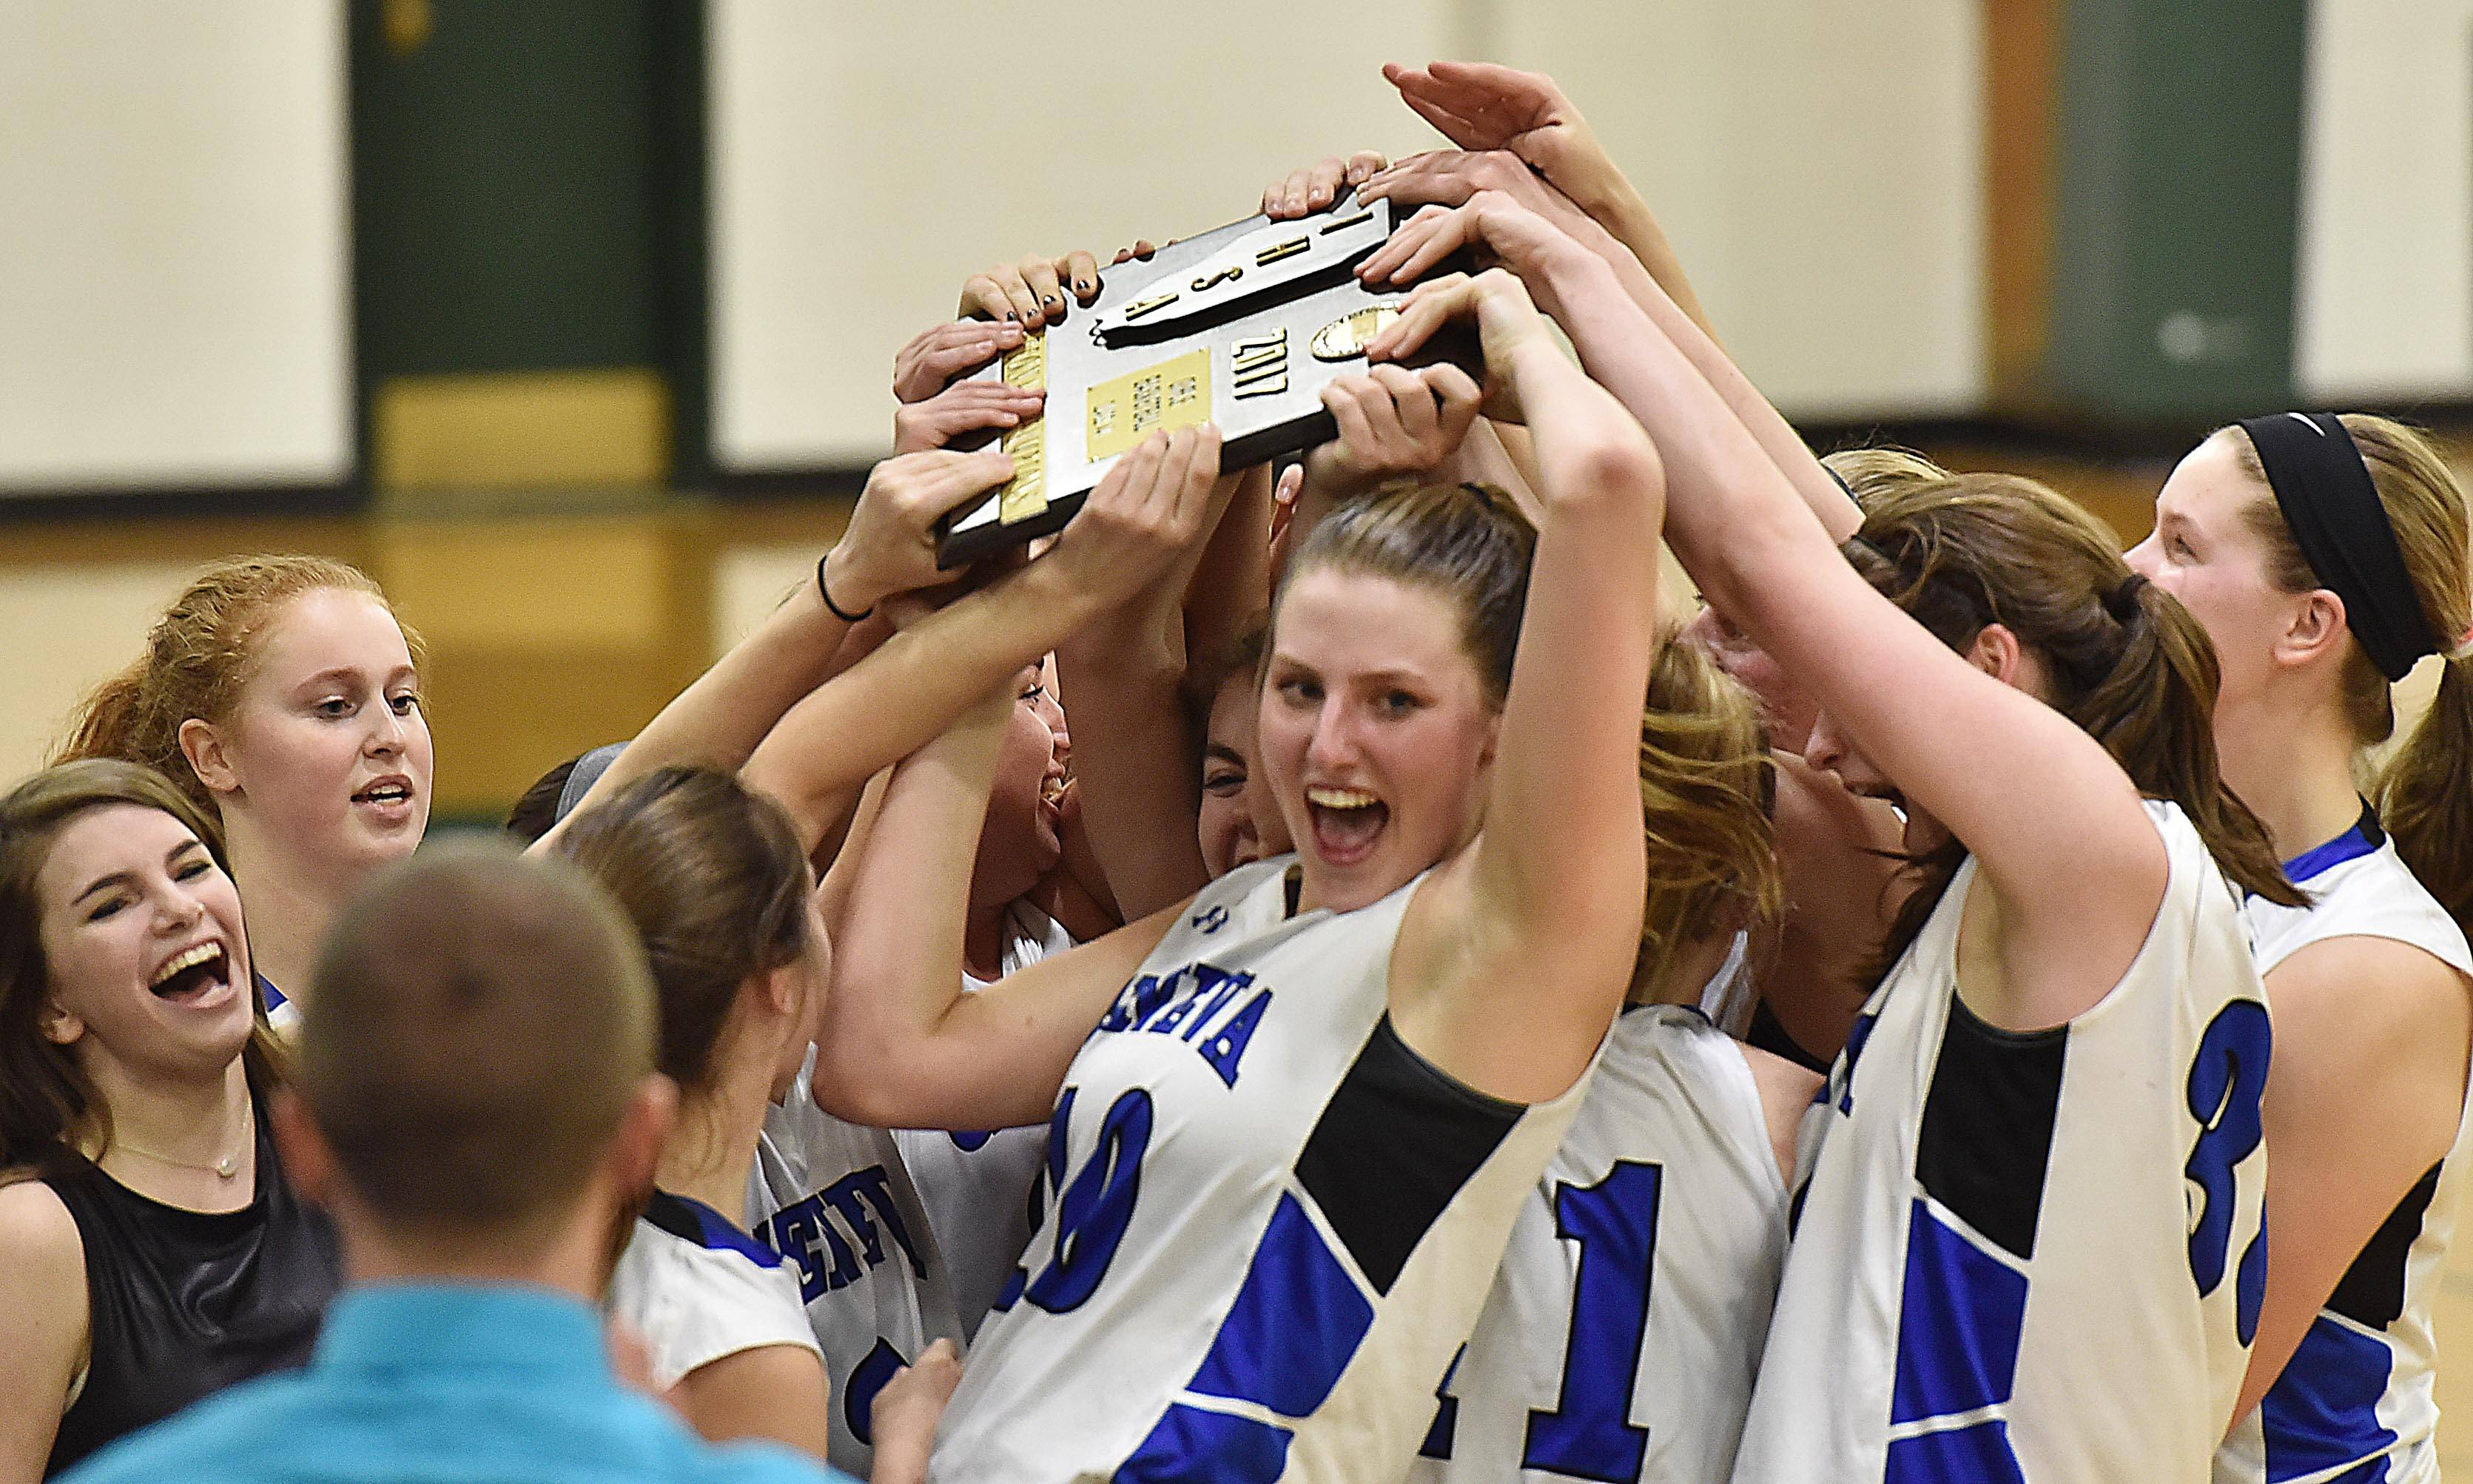 John Starks/jstarks Geneva's Grace Loberg and her teammates hoist the trophy after defeating Rolling Meadows Thursday in the Class 4A Glenbard West sectional girls basketball championship game in Glen Ellyn.